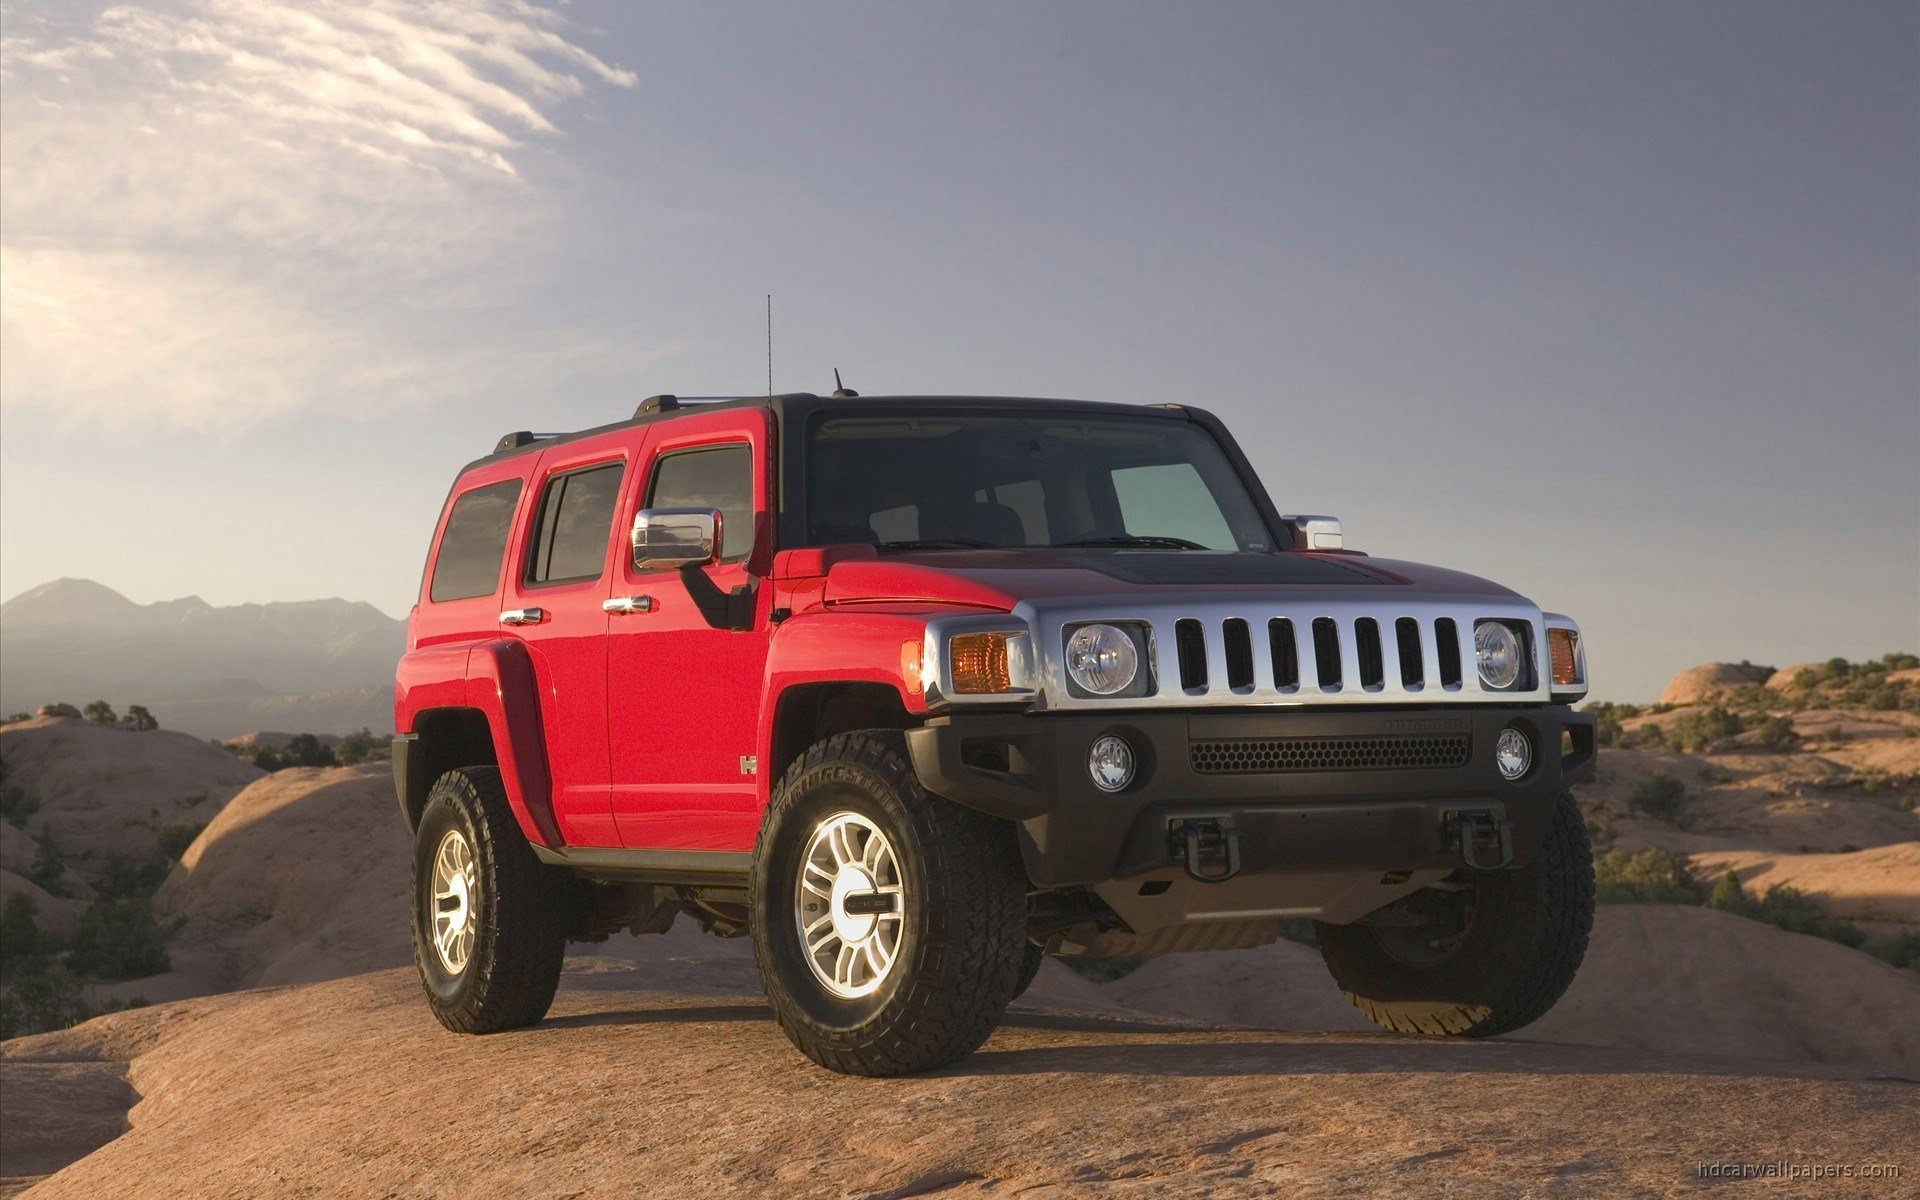 Latest Hummer New Model 2 Wallpaper Hd Car Wallpapers Id 606 Free Download